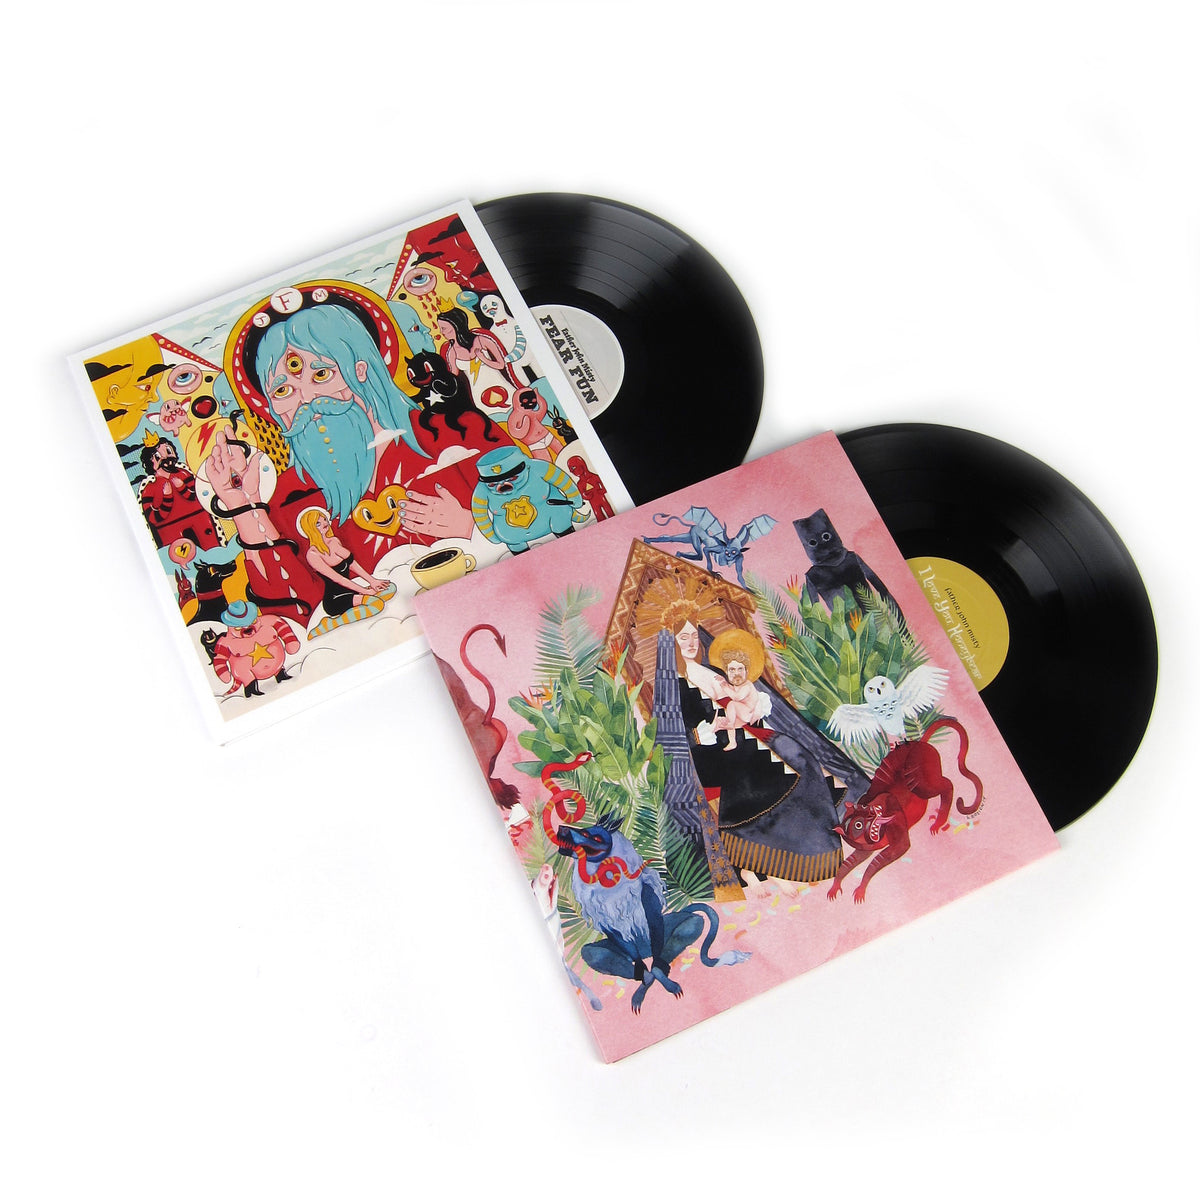 Father John Misty: Vinyl LP Album Pack (Fear Fun, I Love You Honeybear)